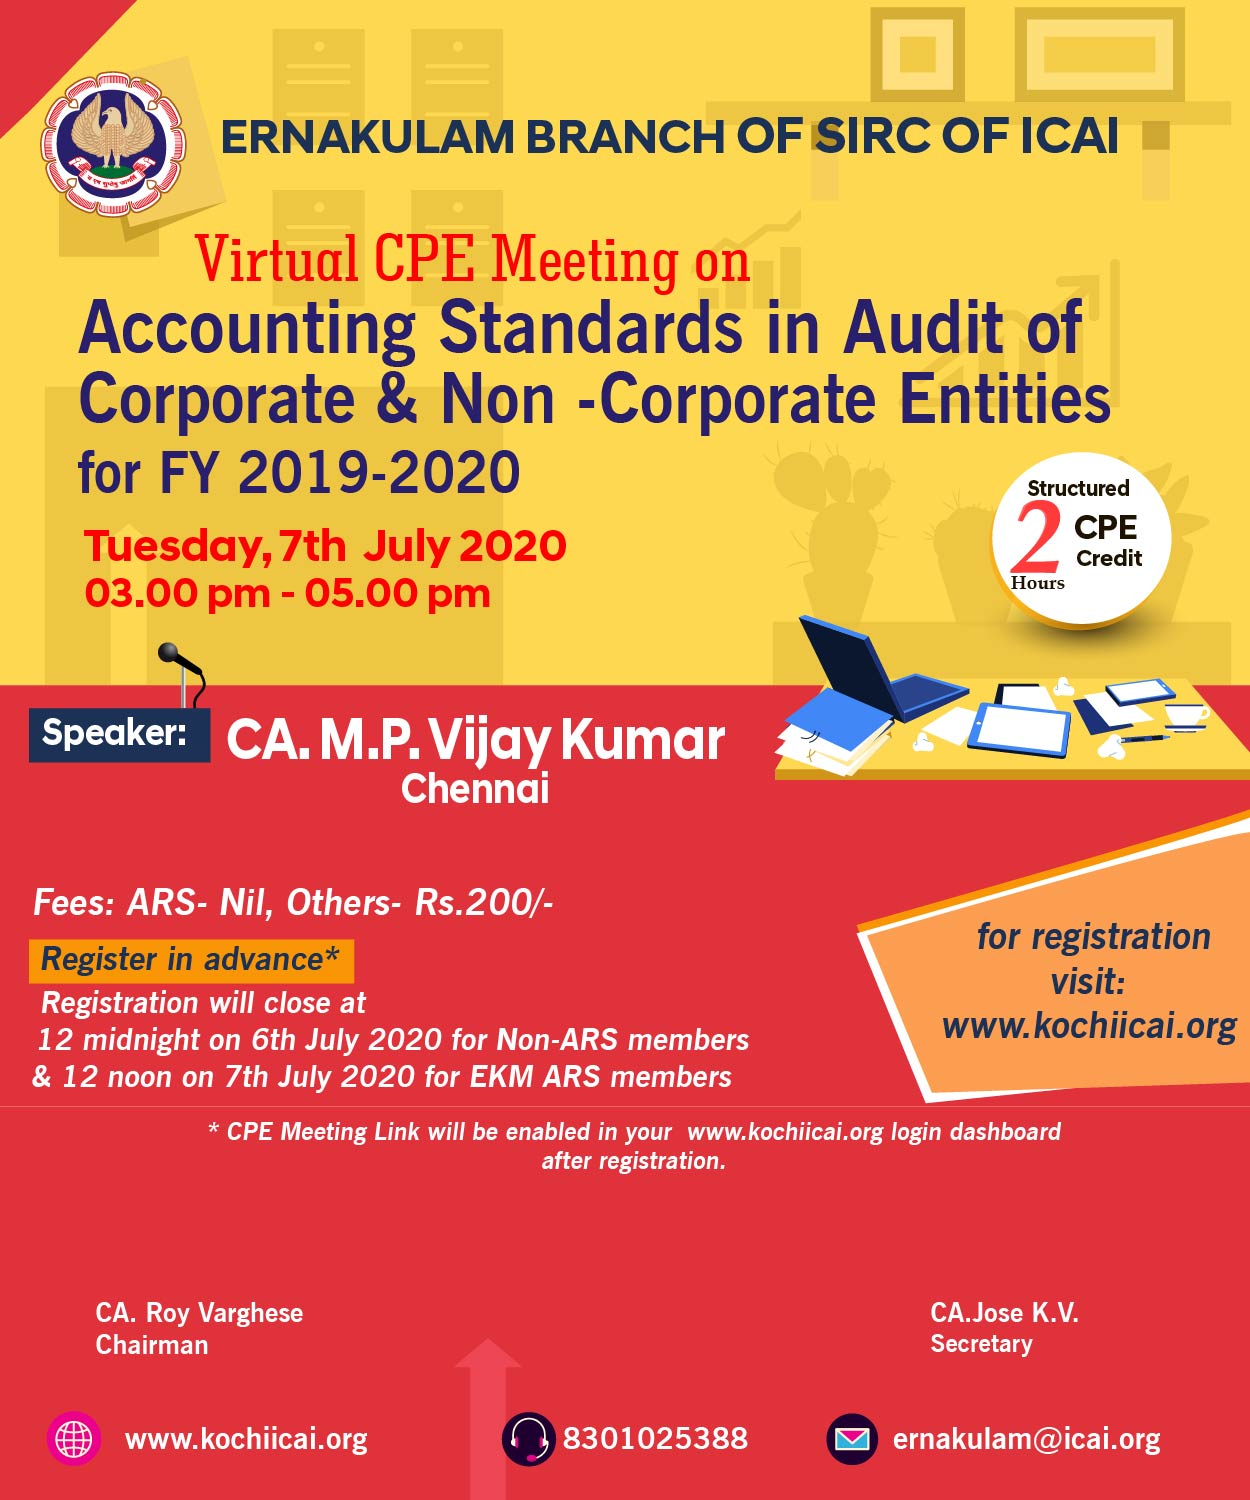 Virtual CPE Meeting  on Accounting Standards in Audit of Corporate & Non -Corporate Entities  for FY 2019-2020